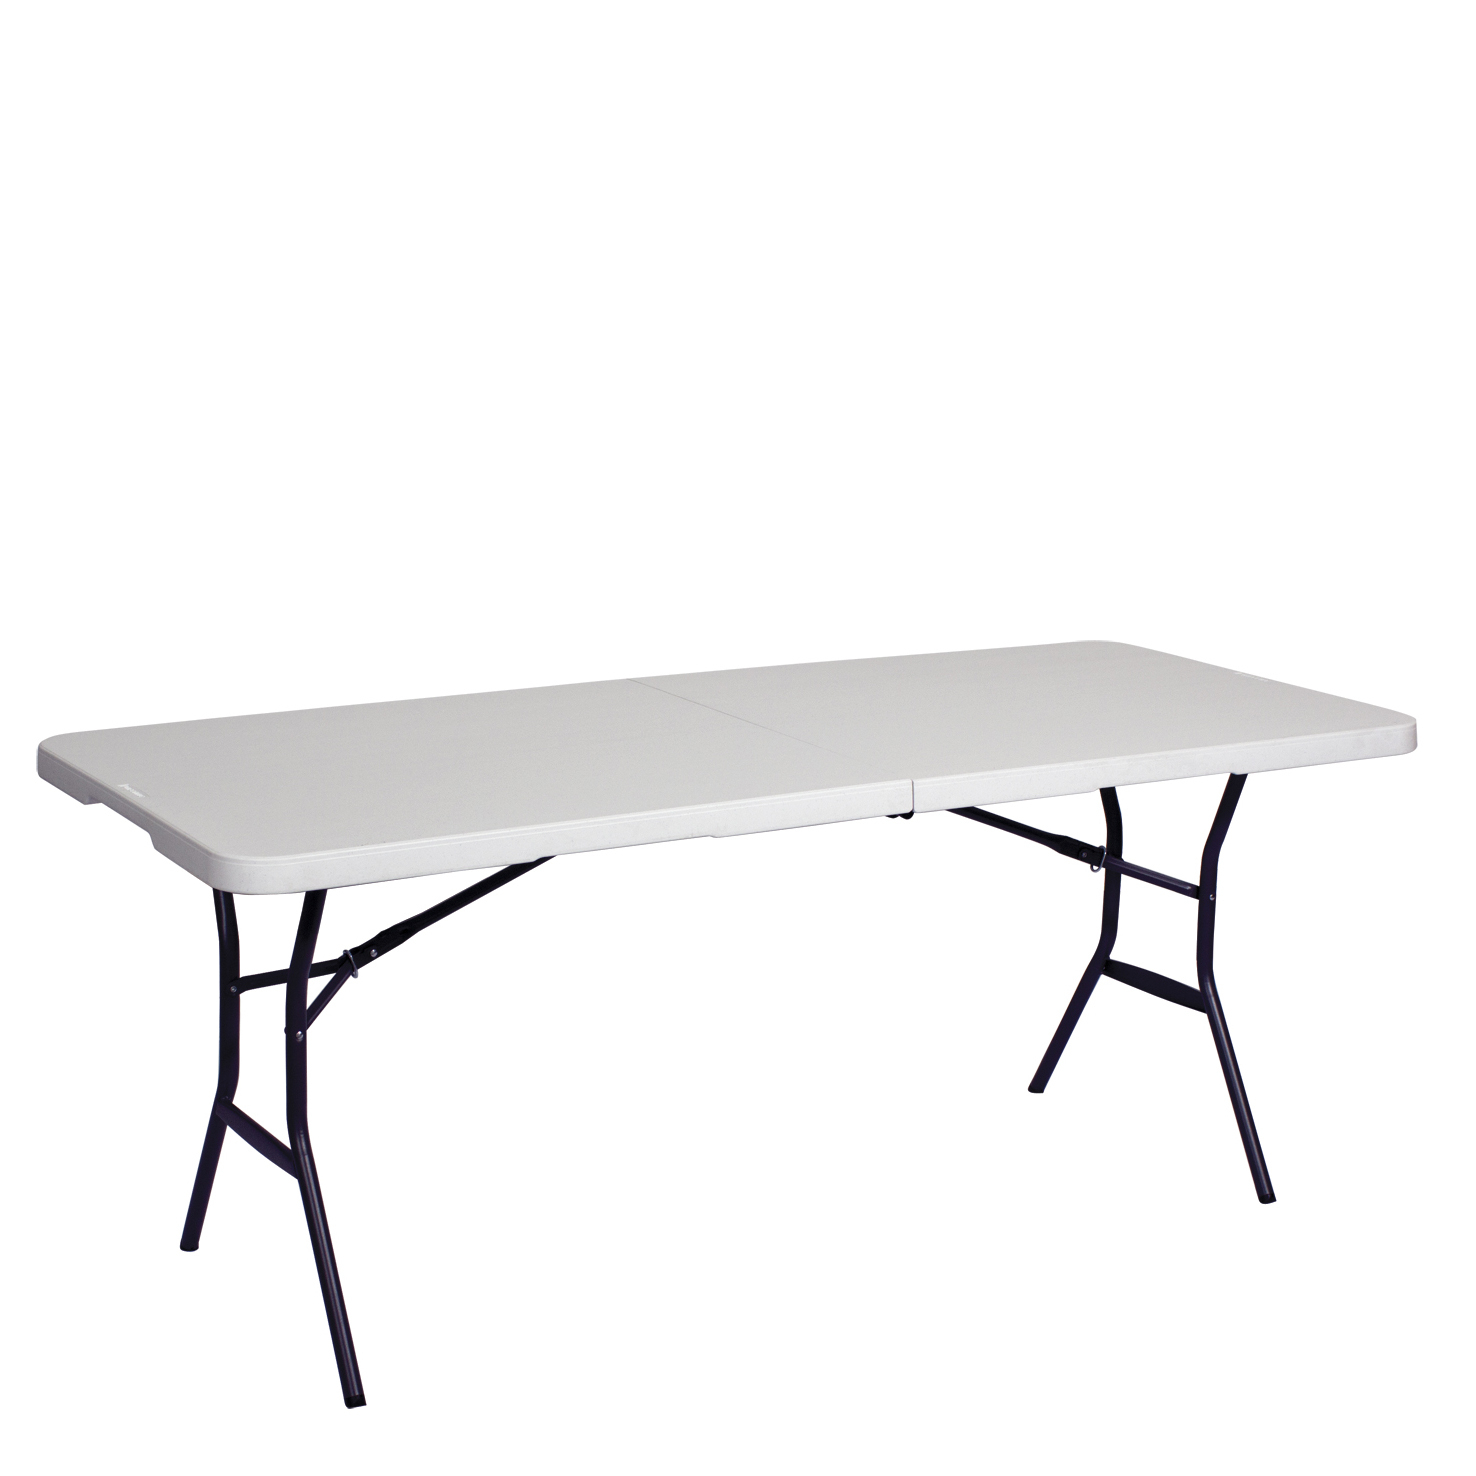 6ft Portable Folding Table